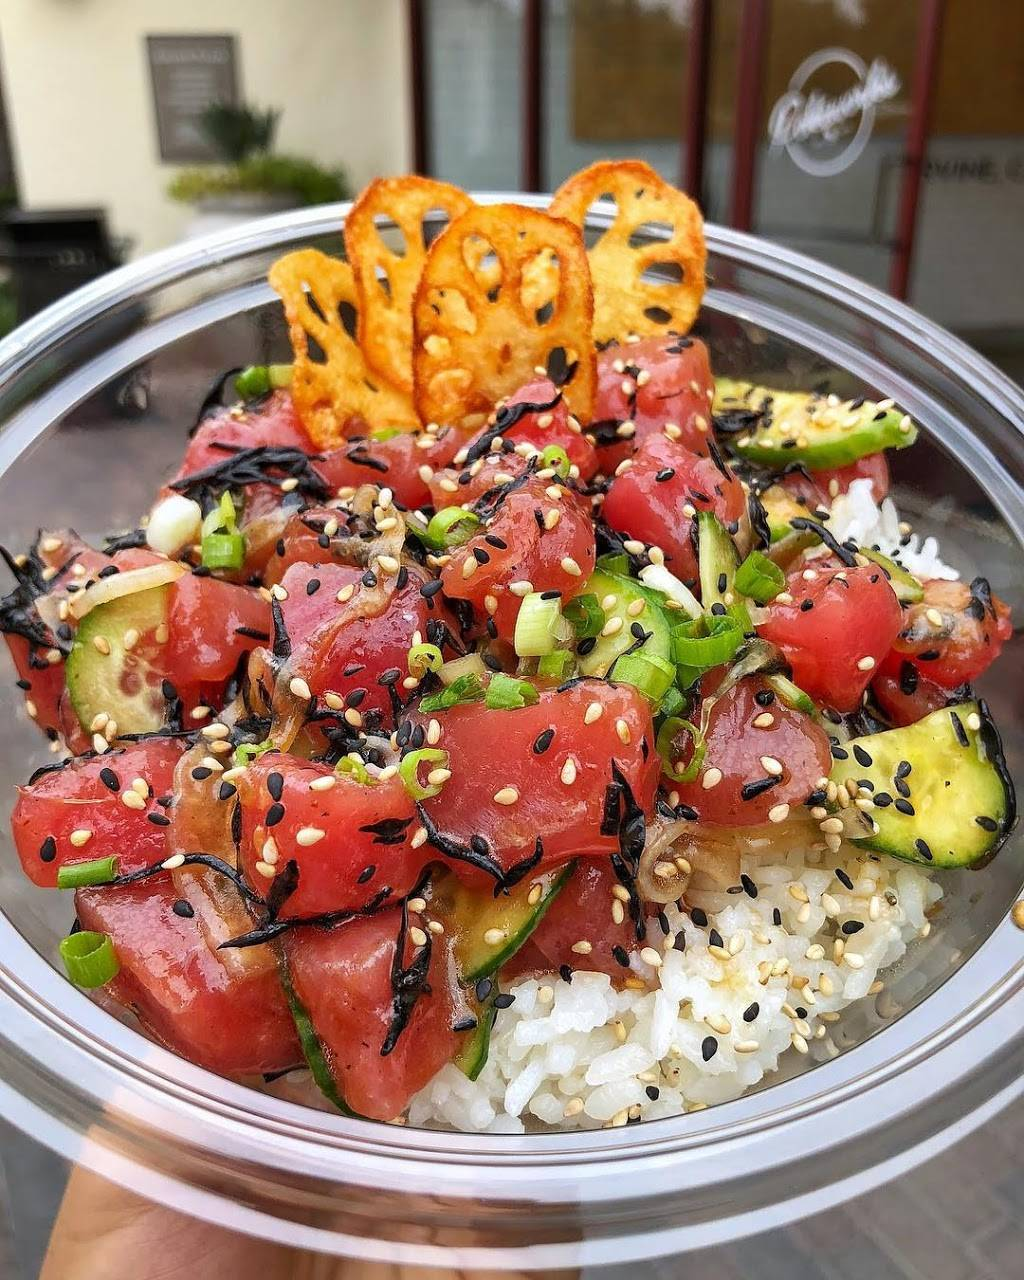 Pokeworks - Opening Soon | restaurant | 1101 Airport Rd, Bloomington, IL 61704, USA